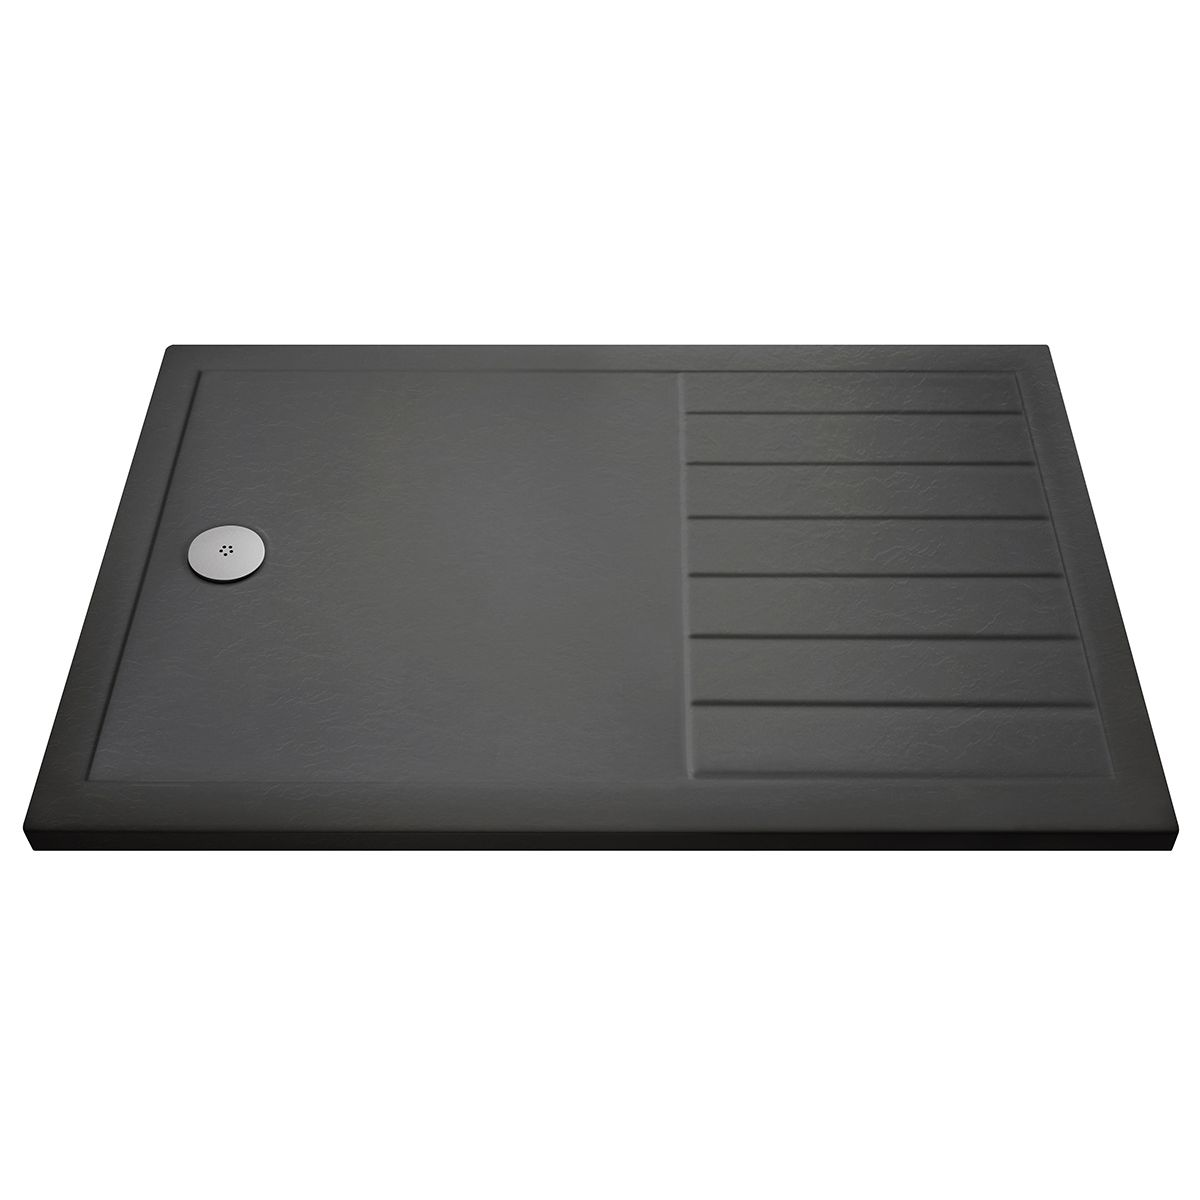 Pearlstone Slate Grey Rectangular Walk-In Shower Tray 1700 x 700mm